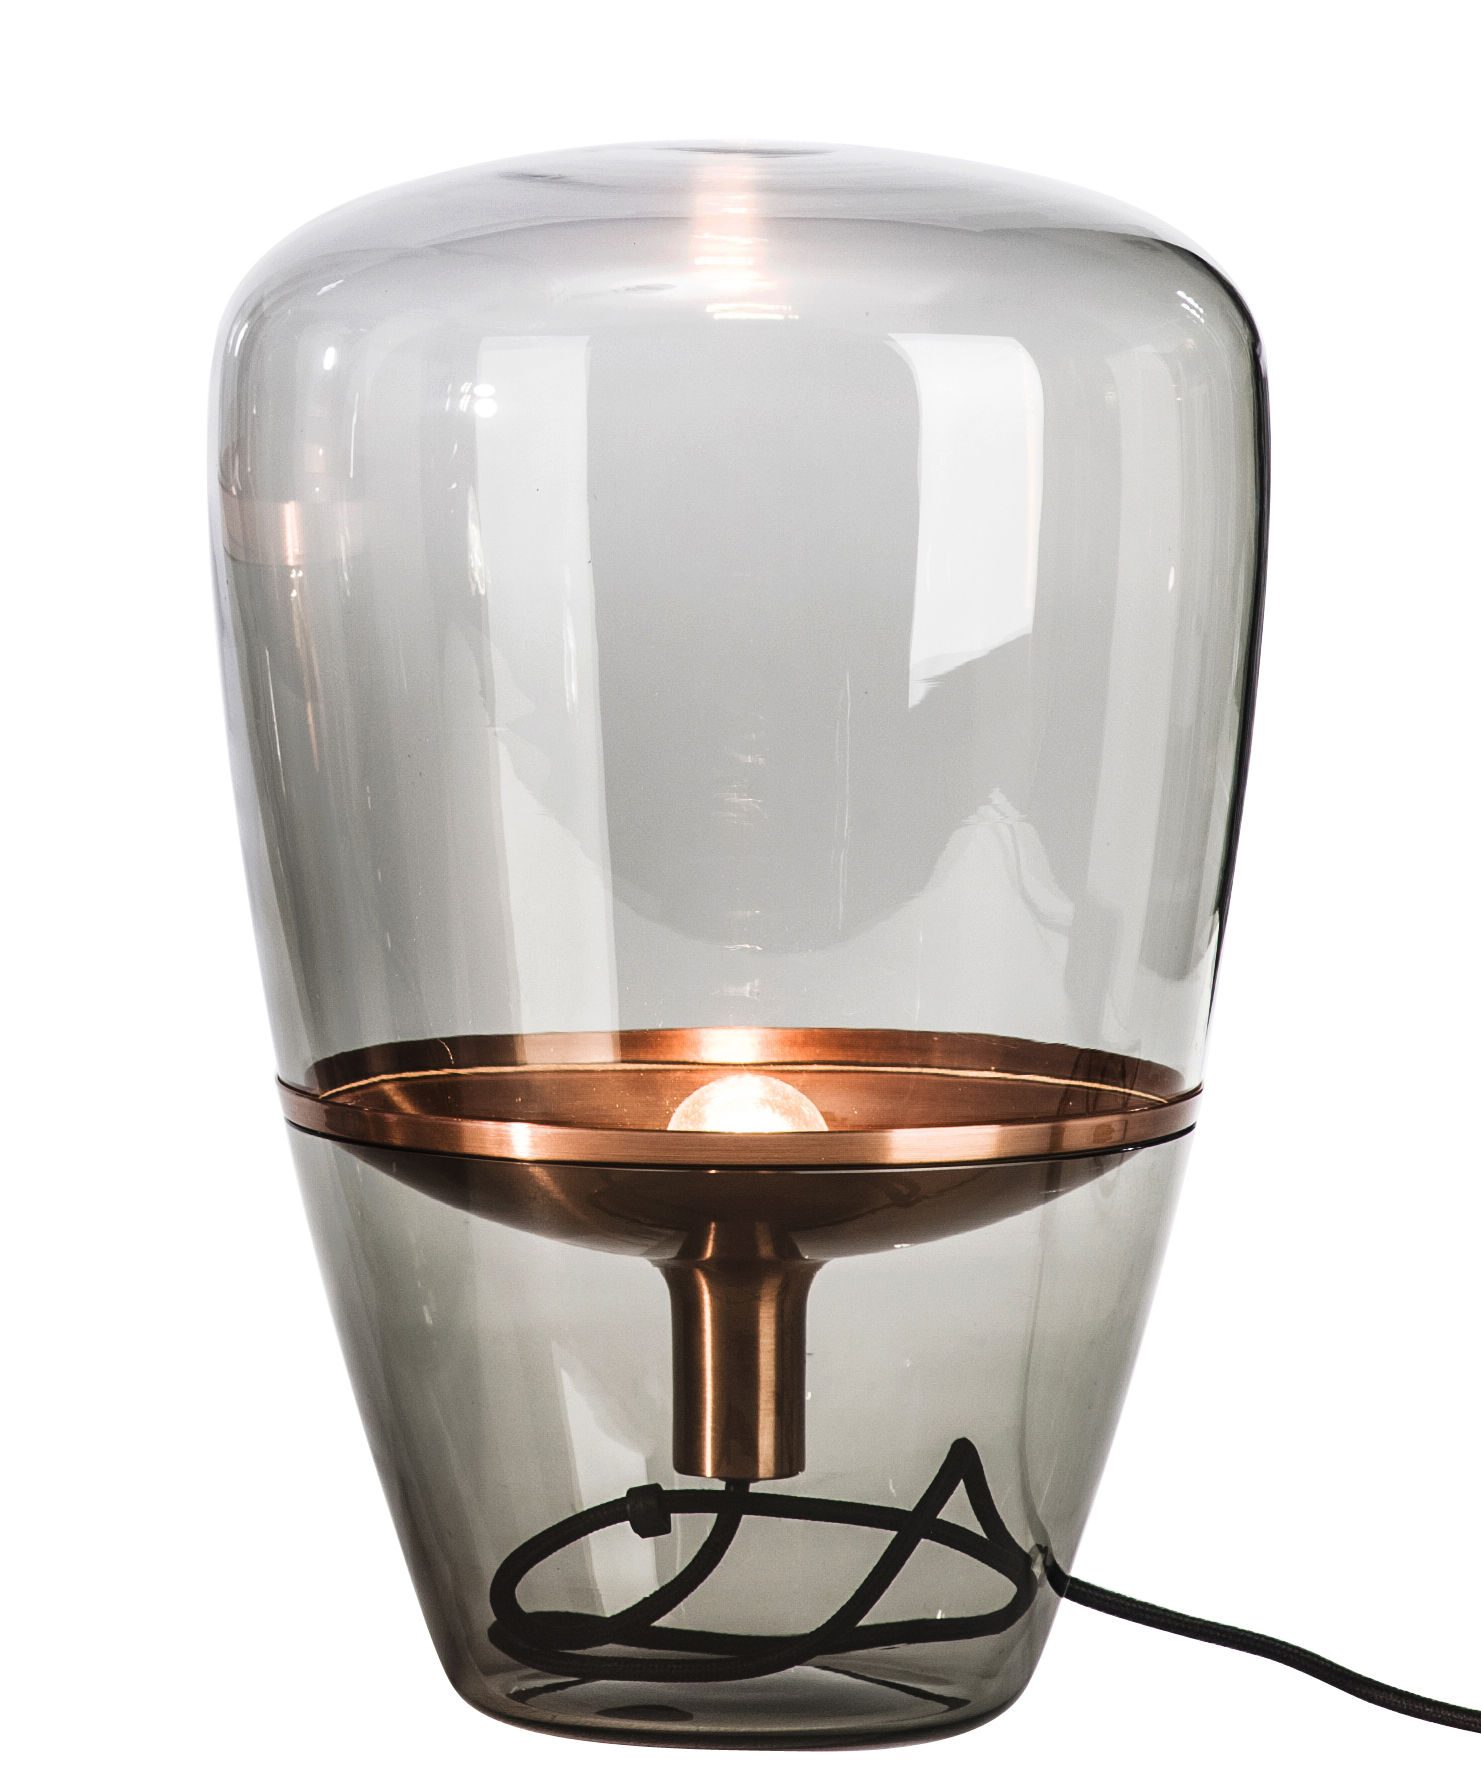 Lighting - Table Lamps - Balloon Small Table lamp by Brokis - Smoke glass / Copper - Copper, Moulded Mouth blown glass